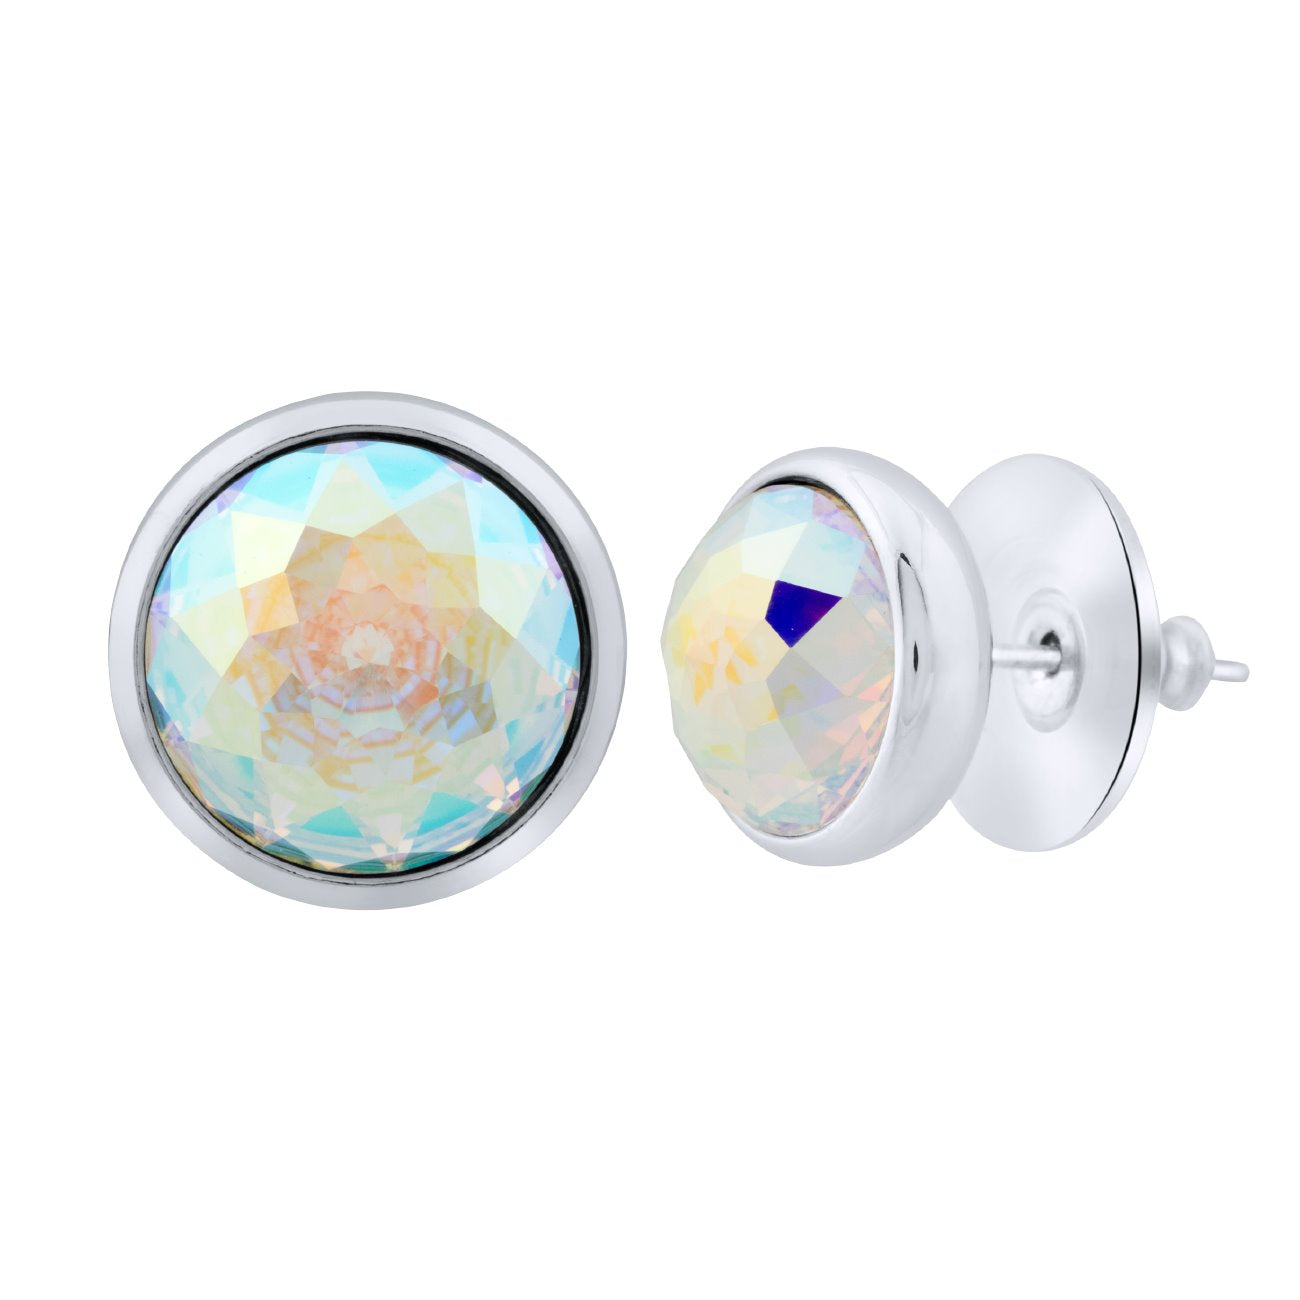 Elysees Stud Earrings Silver Aurora Borealis JOY OF SPARKLE FOREVER CRYSTALS